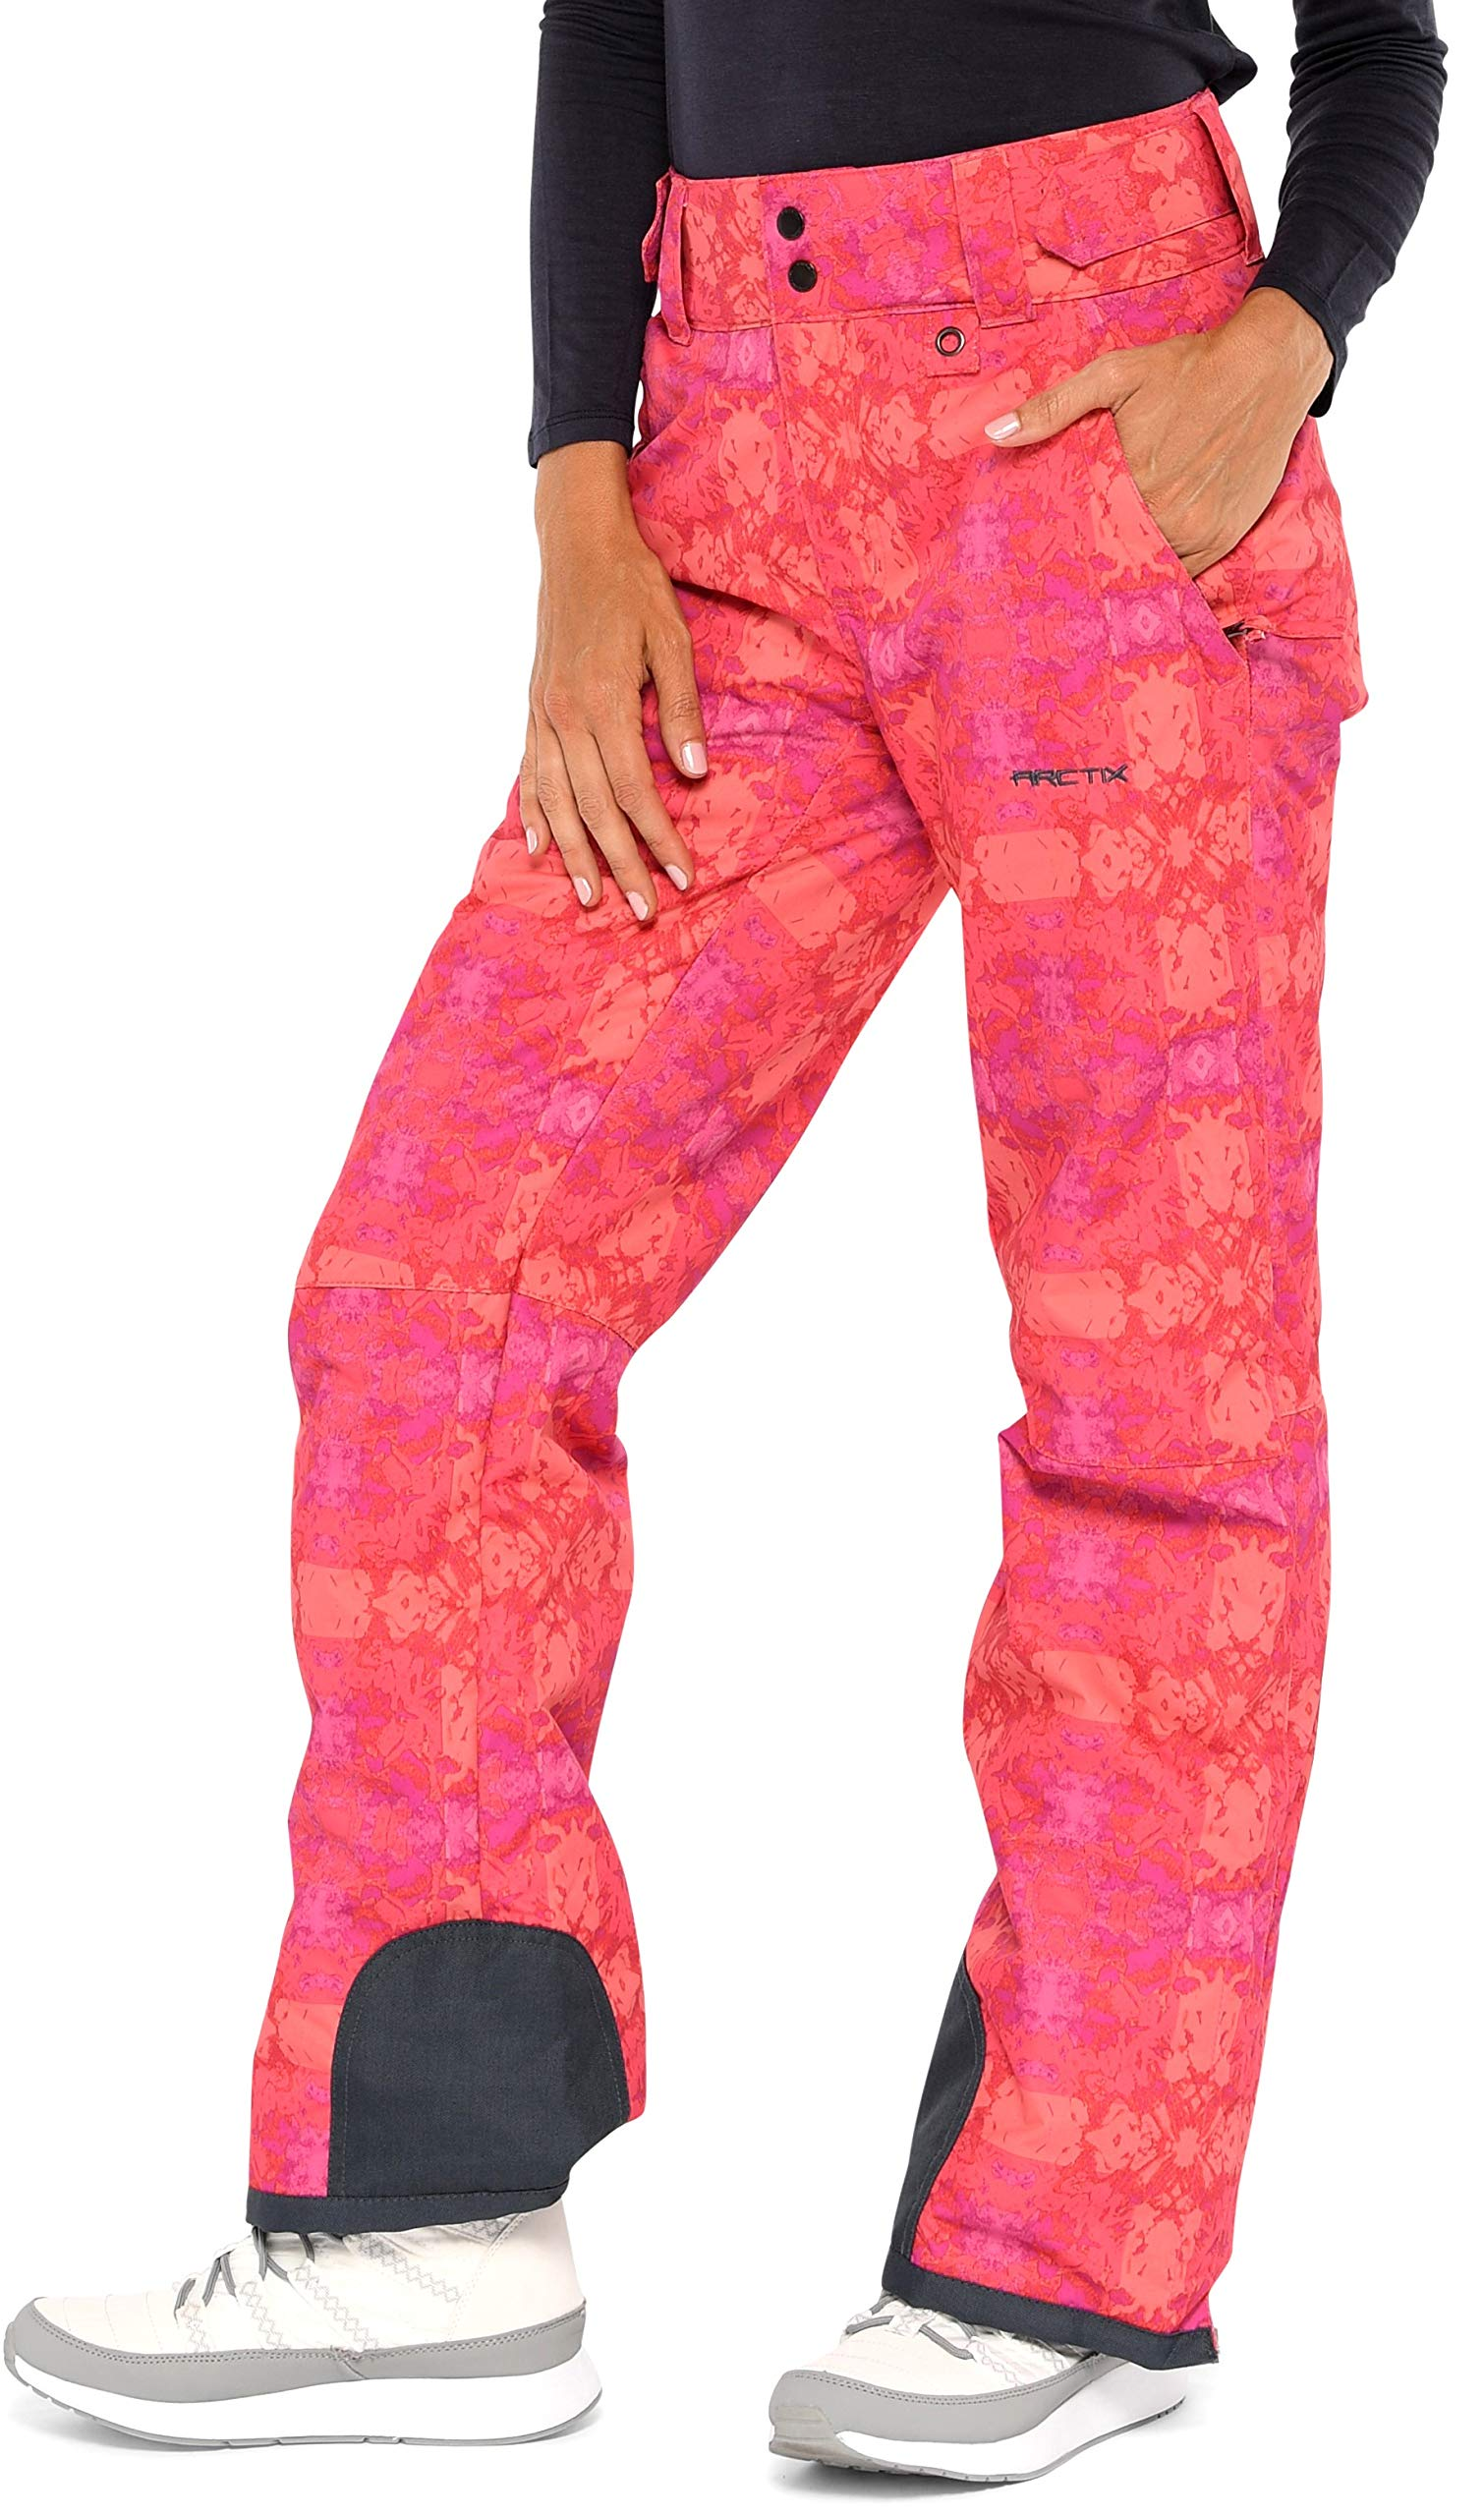 Arctix Women's Insulated Snow Pants, Summit Print Red, Medium/Regular by Arctix